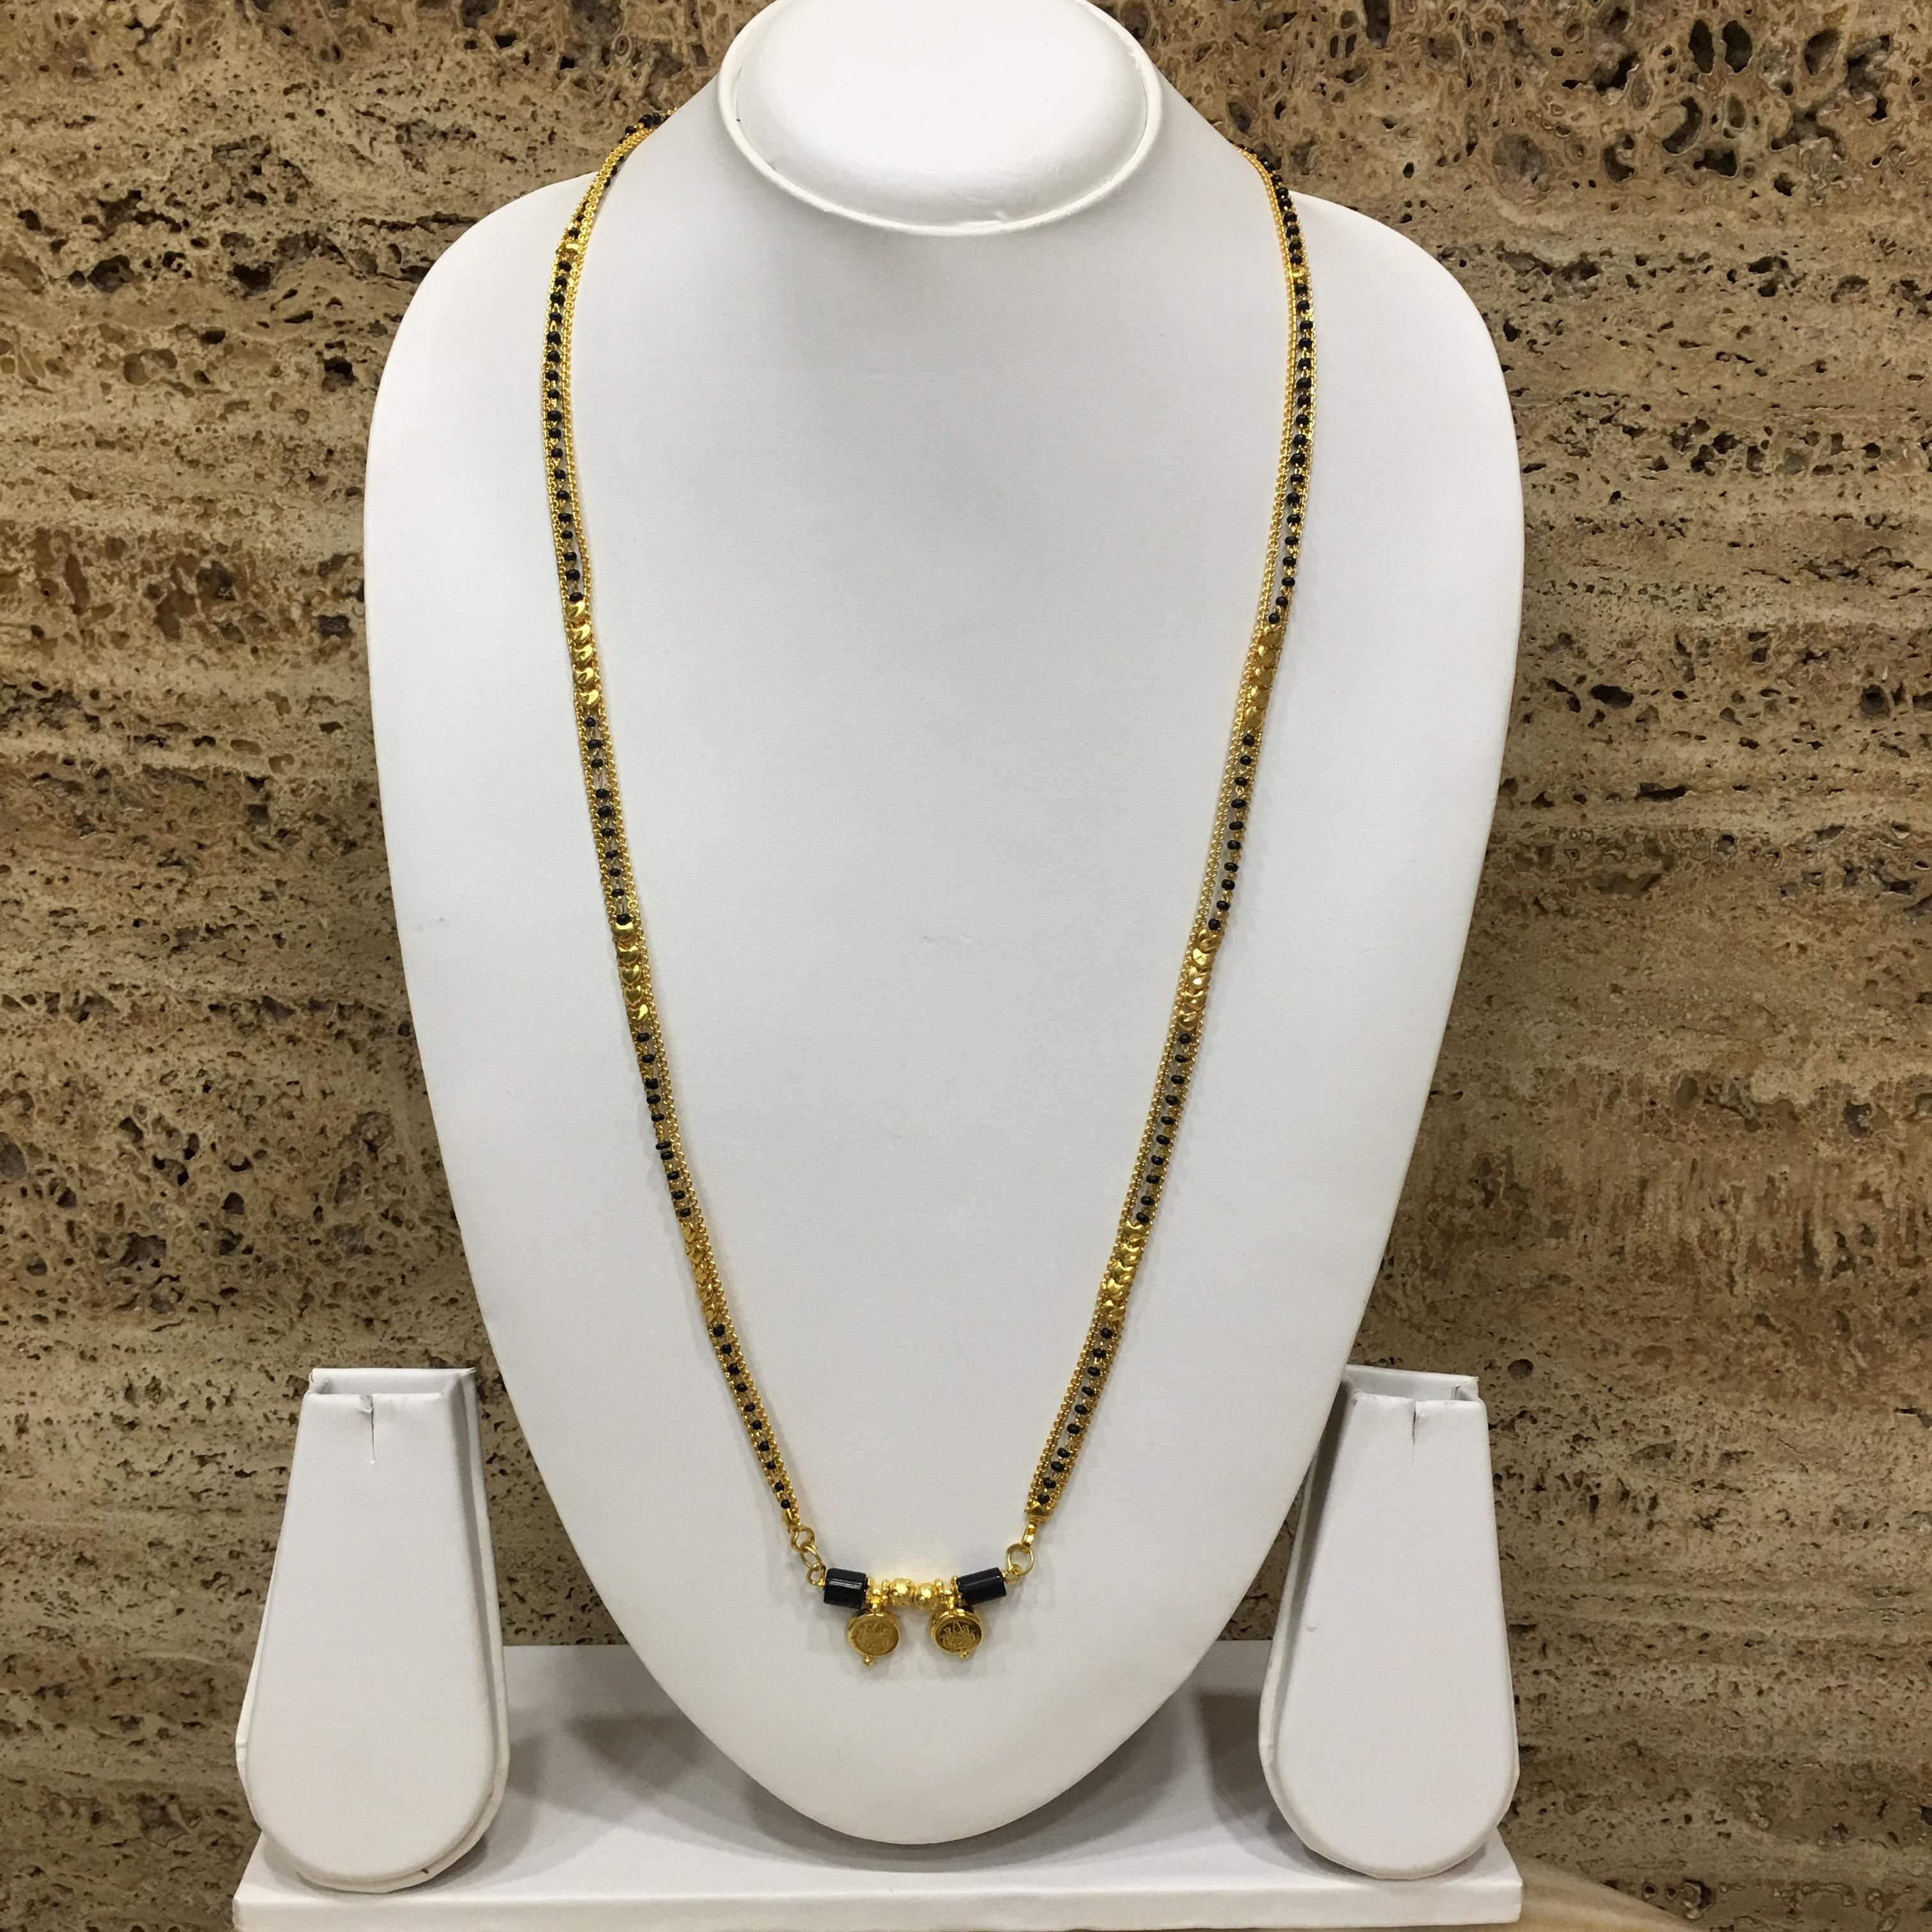 Digital Dress Women's Jewellery Gold Plated Mangalsutra Necklace 36-inch Length Chain Golden 2 Laxmi Coin Vati Tanmaniya Pendant Traditional Black & Gold Beads Single Line Layer Long Mangalsutra